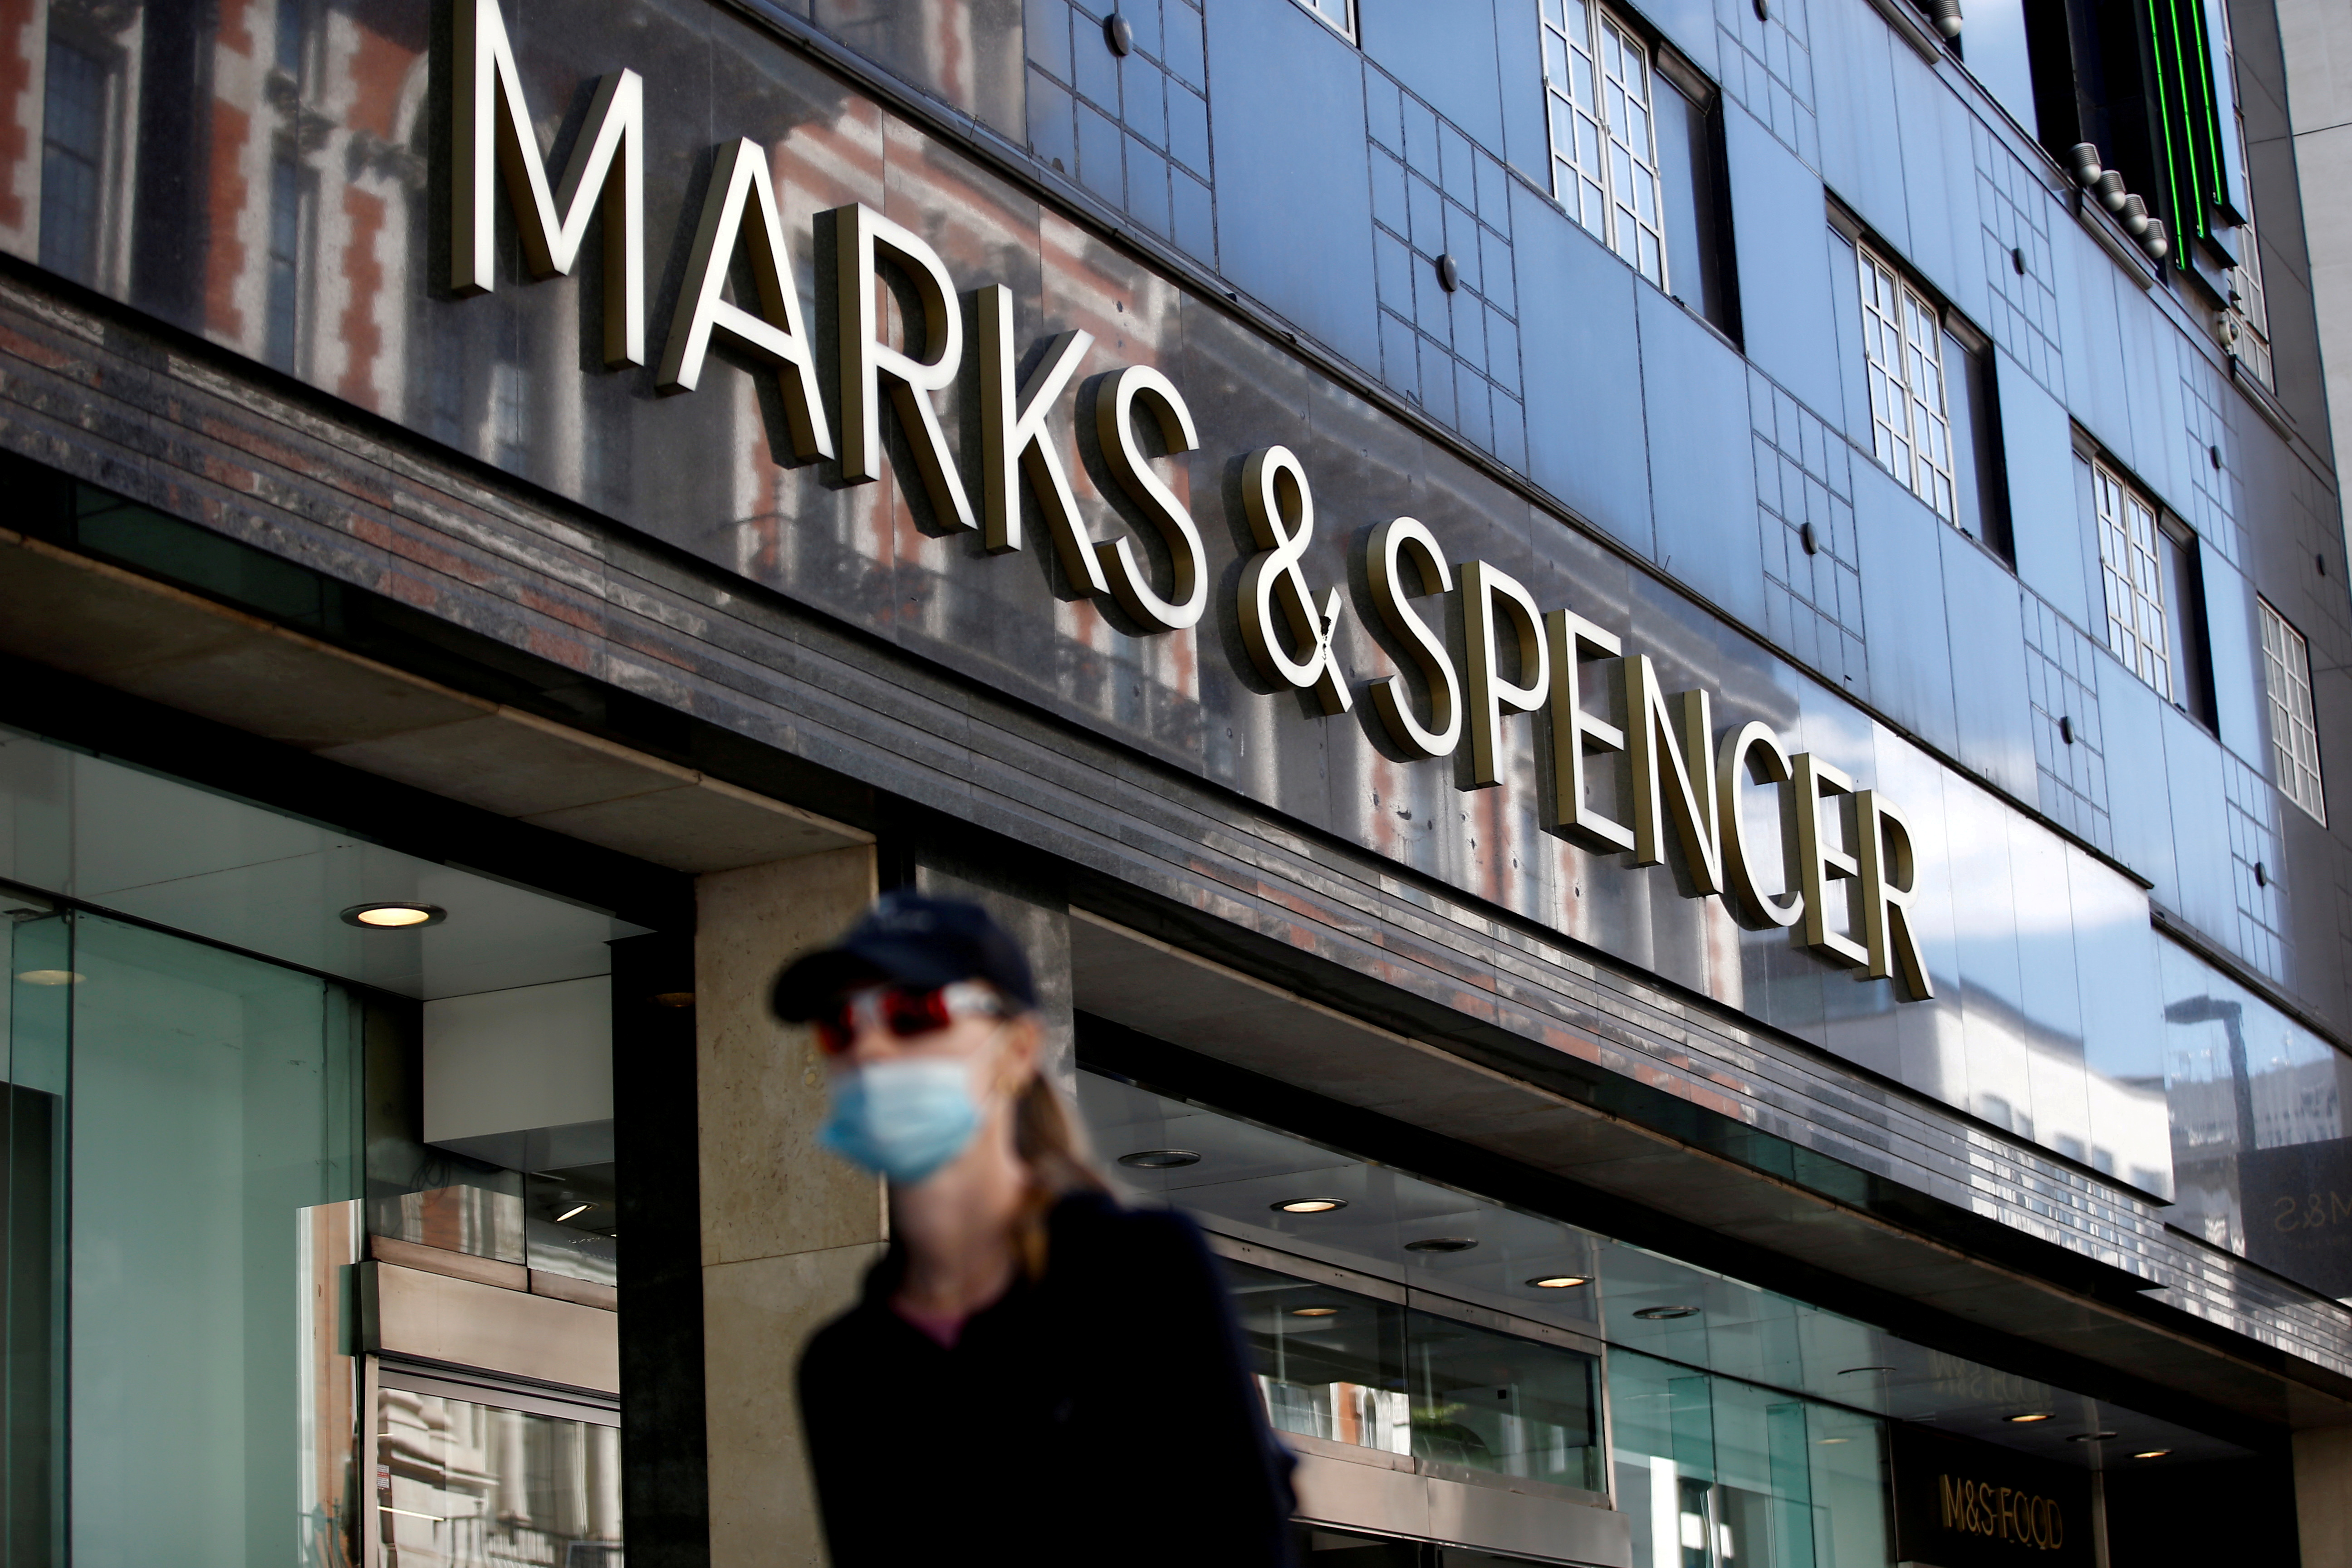 A woman walks past a Marks & Spencer store on Oxford Street, amid the outbreak of the coronavirus disease (COVID-19), in London, Britain, July 20, 2020. REUTERS/Henry Nicholls